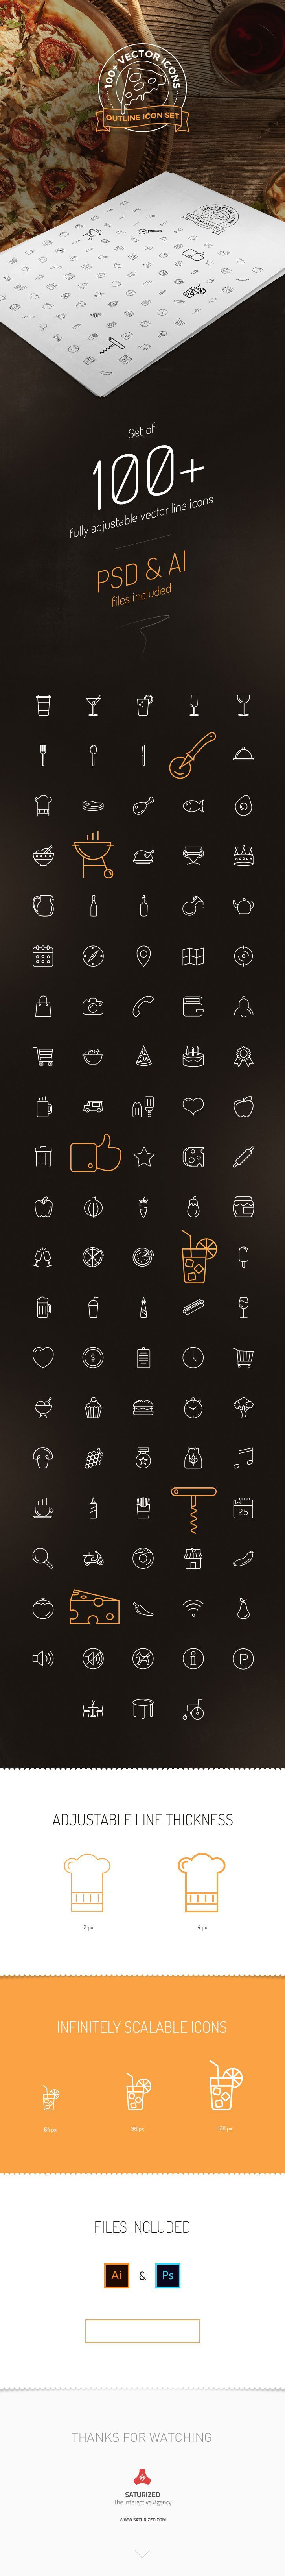 Free Download : 100+ Outline Icons For Restaurant or Pizza House Website (AI,PSD):